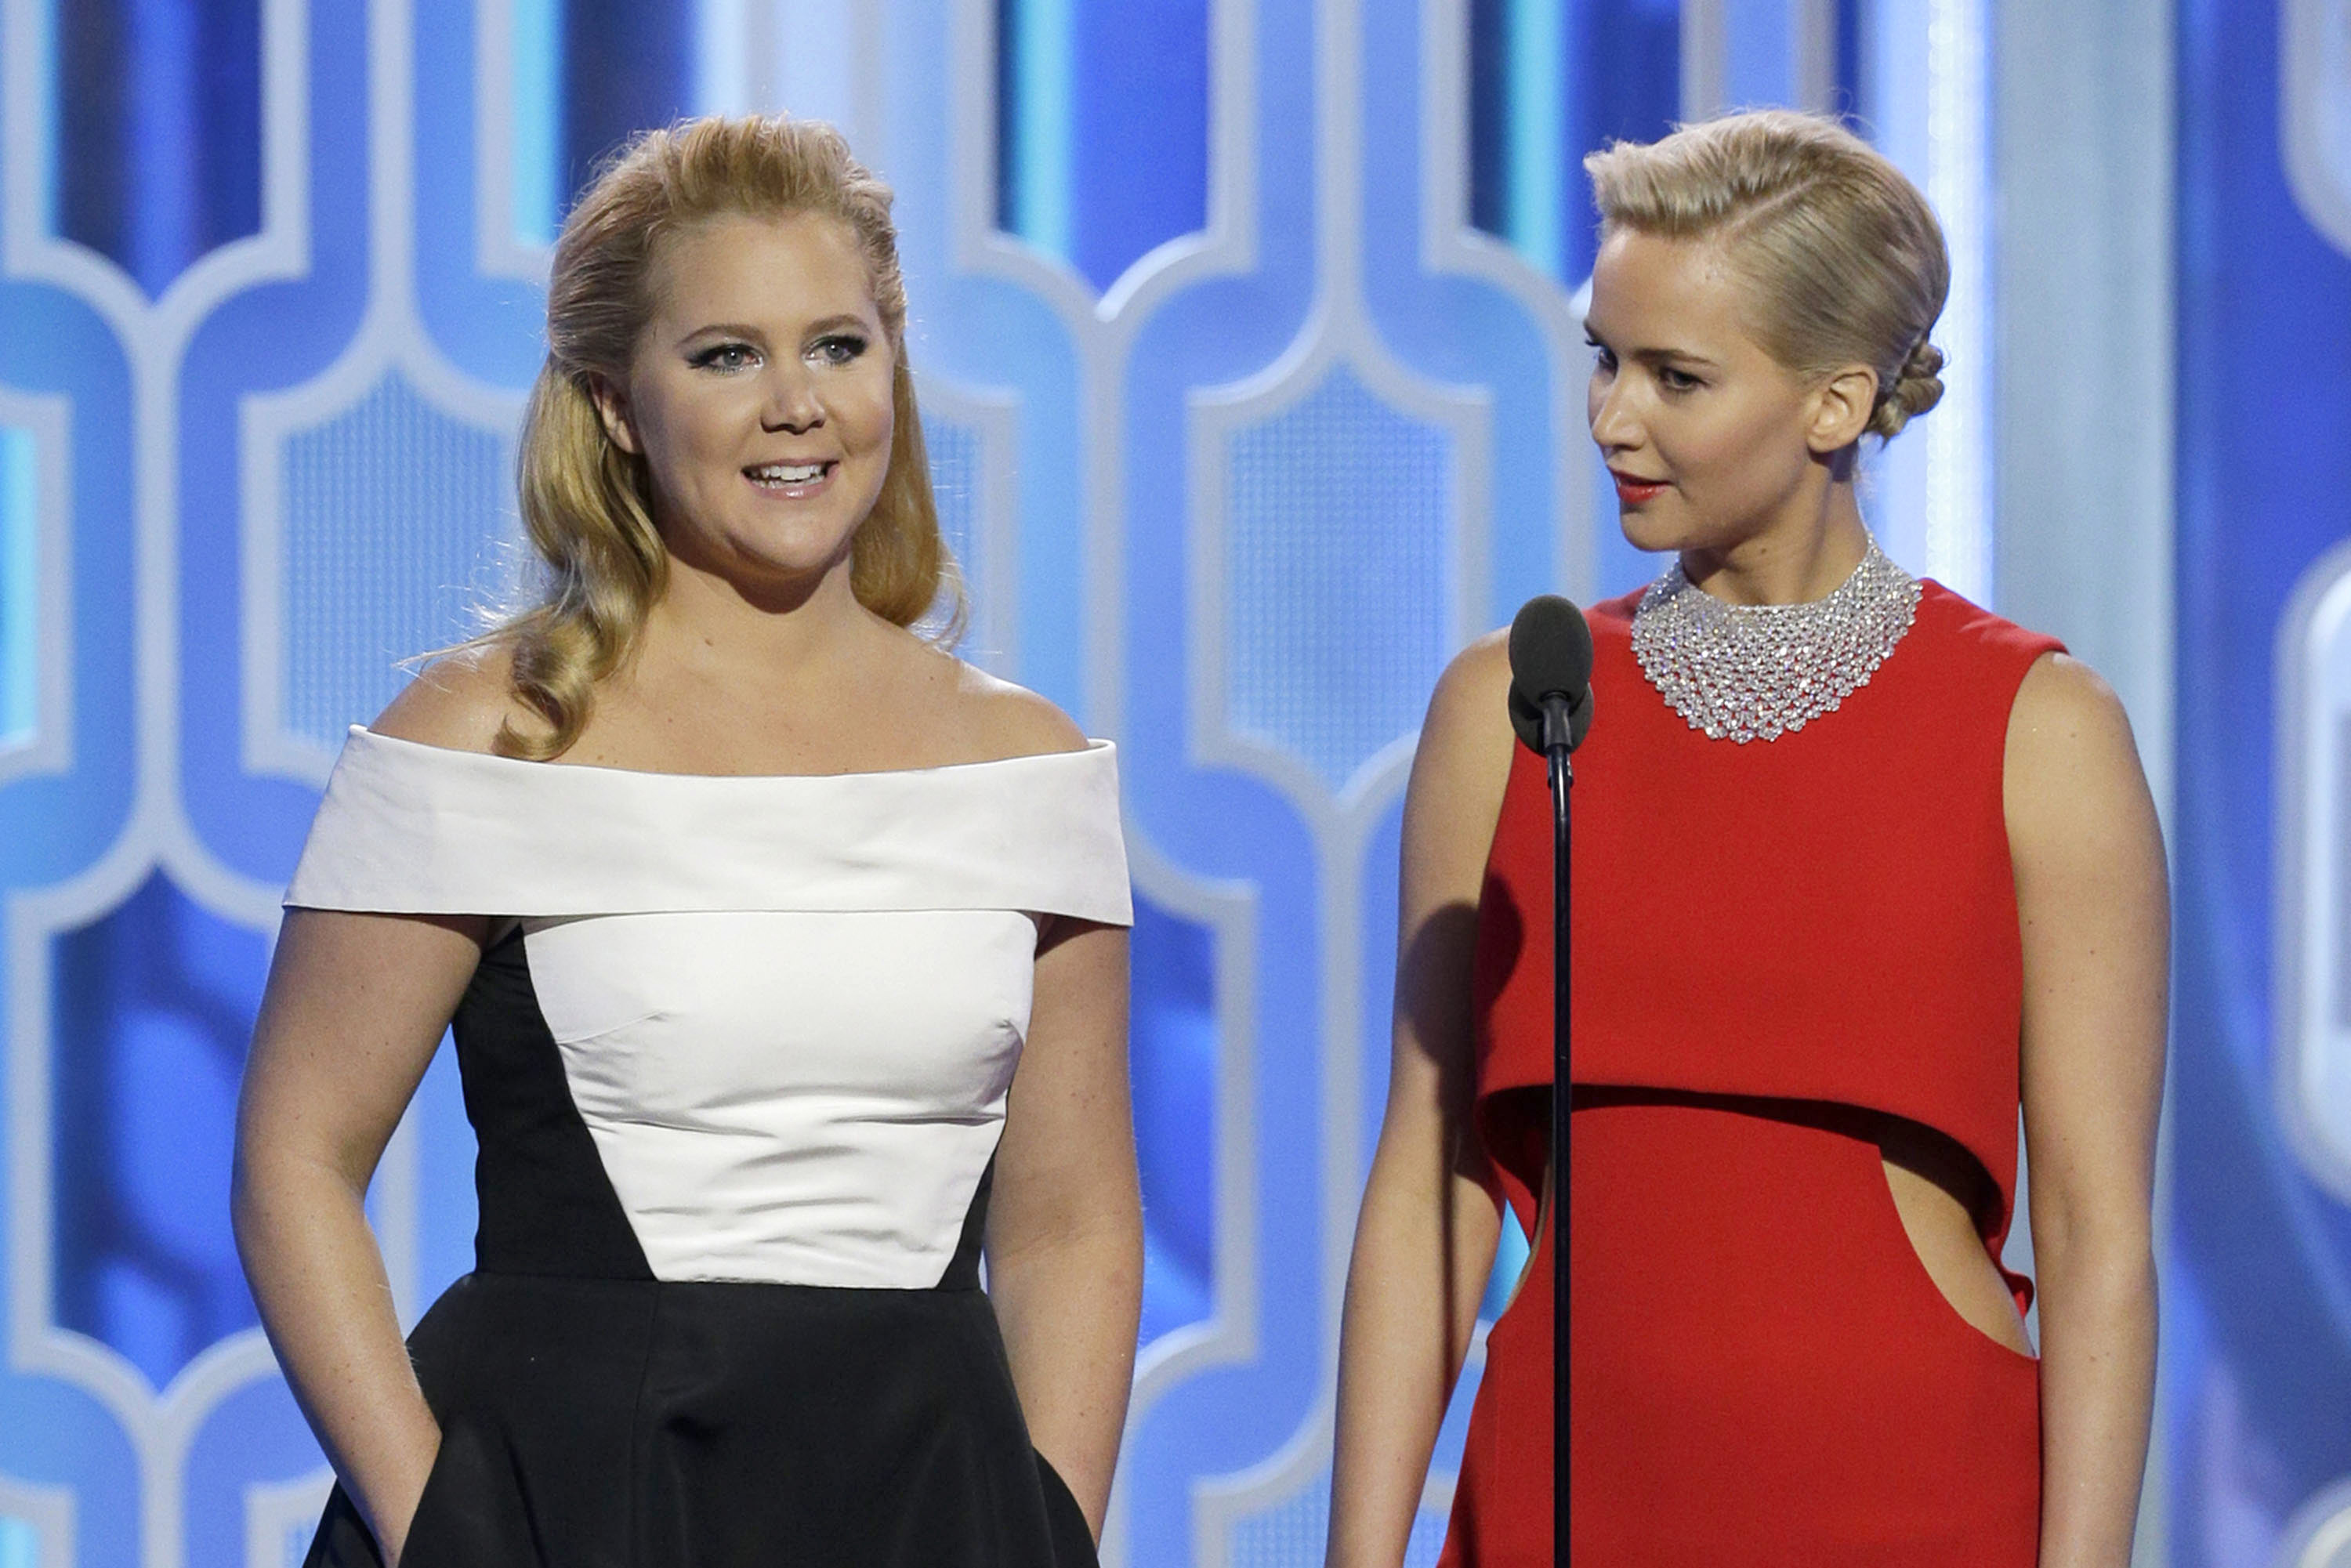 In this handout photo provided by NBCUniversal,  Presenters Amy Schumer and Jennifer Lawrence speak onstage during the 73rd Annual Golden Globe Awards at The Beverly Hilton Hotel on January 10, 2016 in Beverly Hills, California.